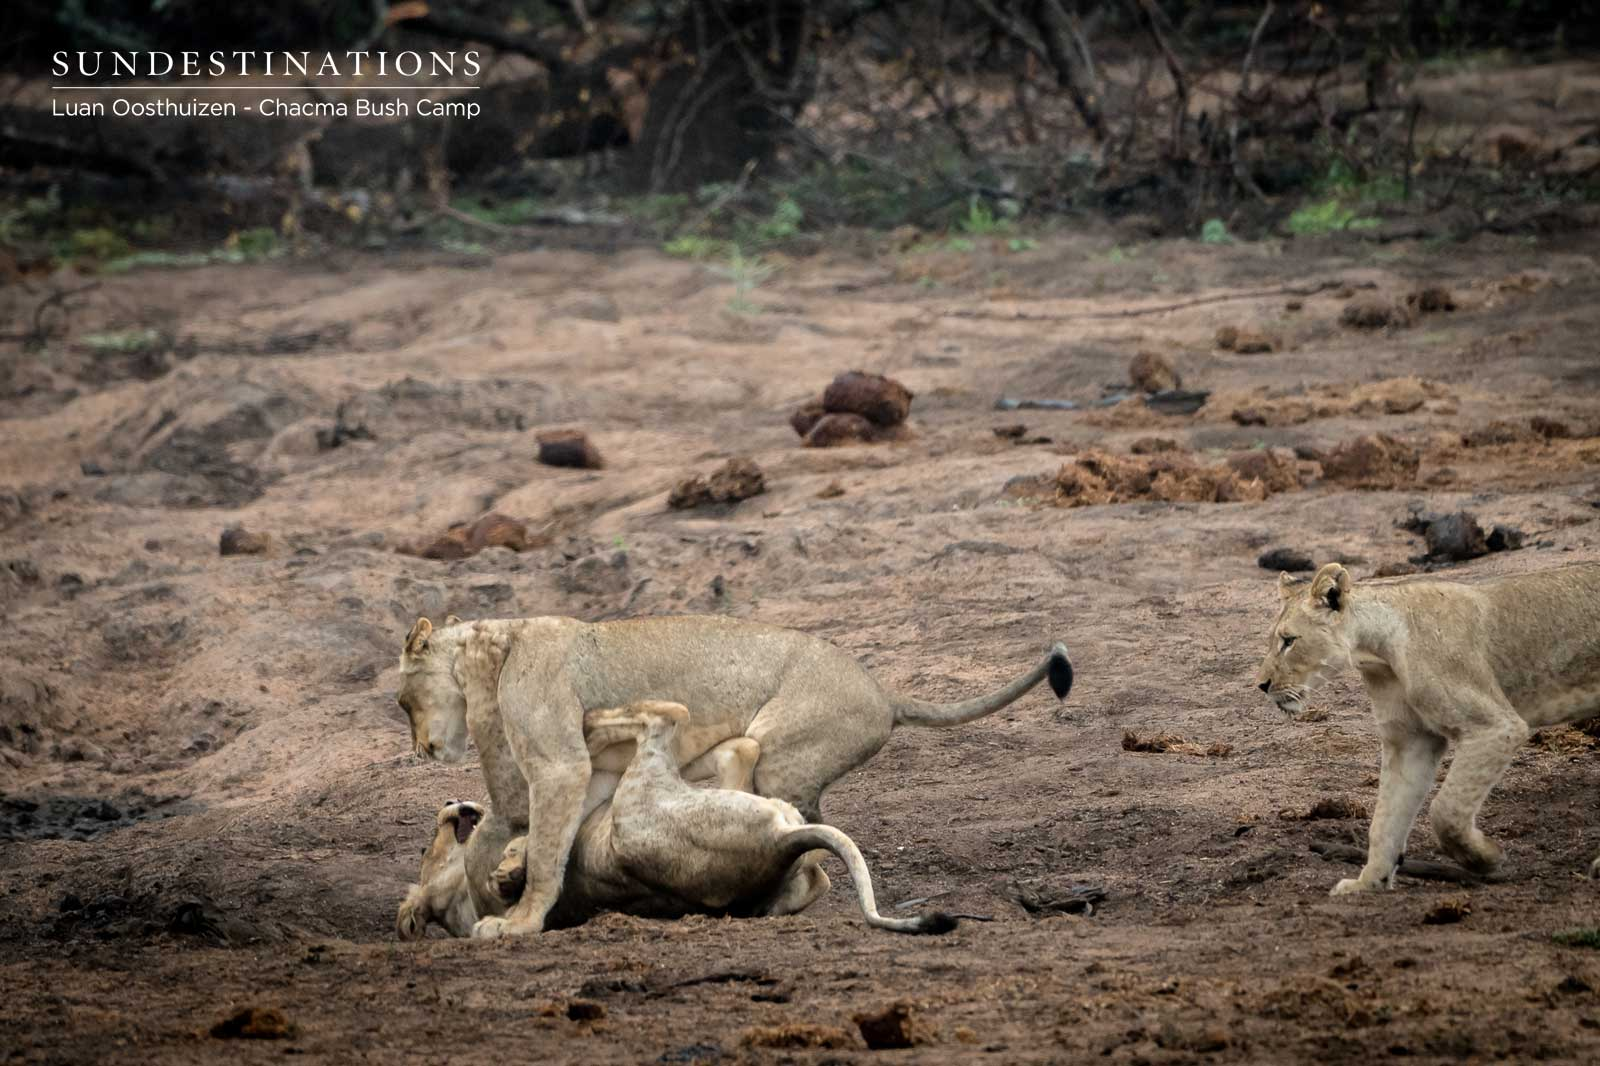 Chacma Lions at Play